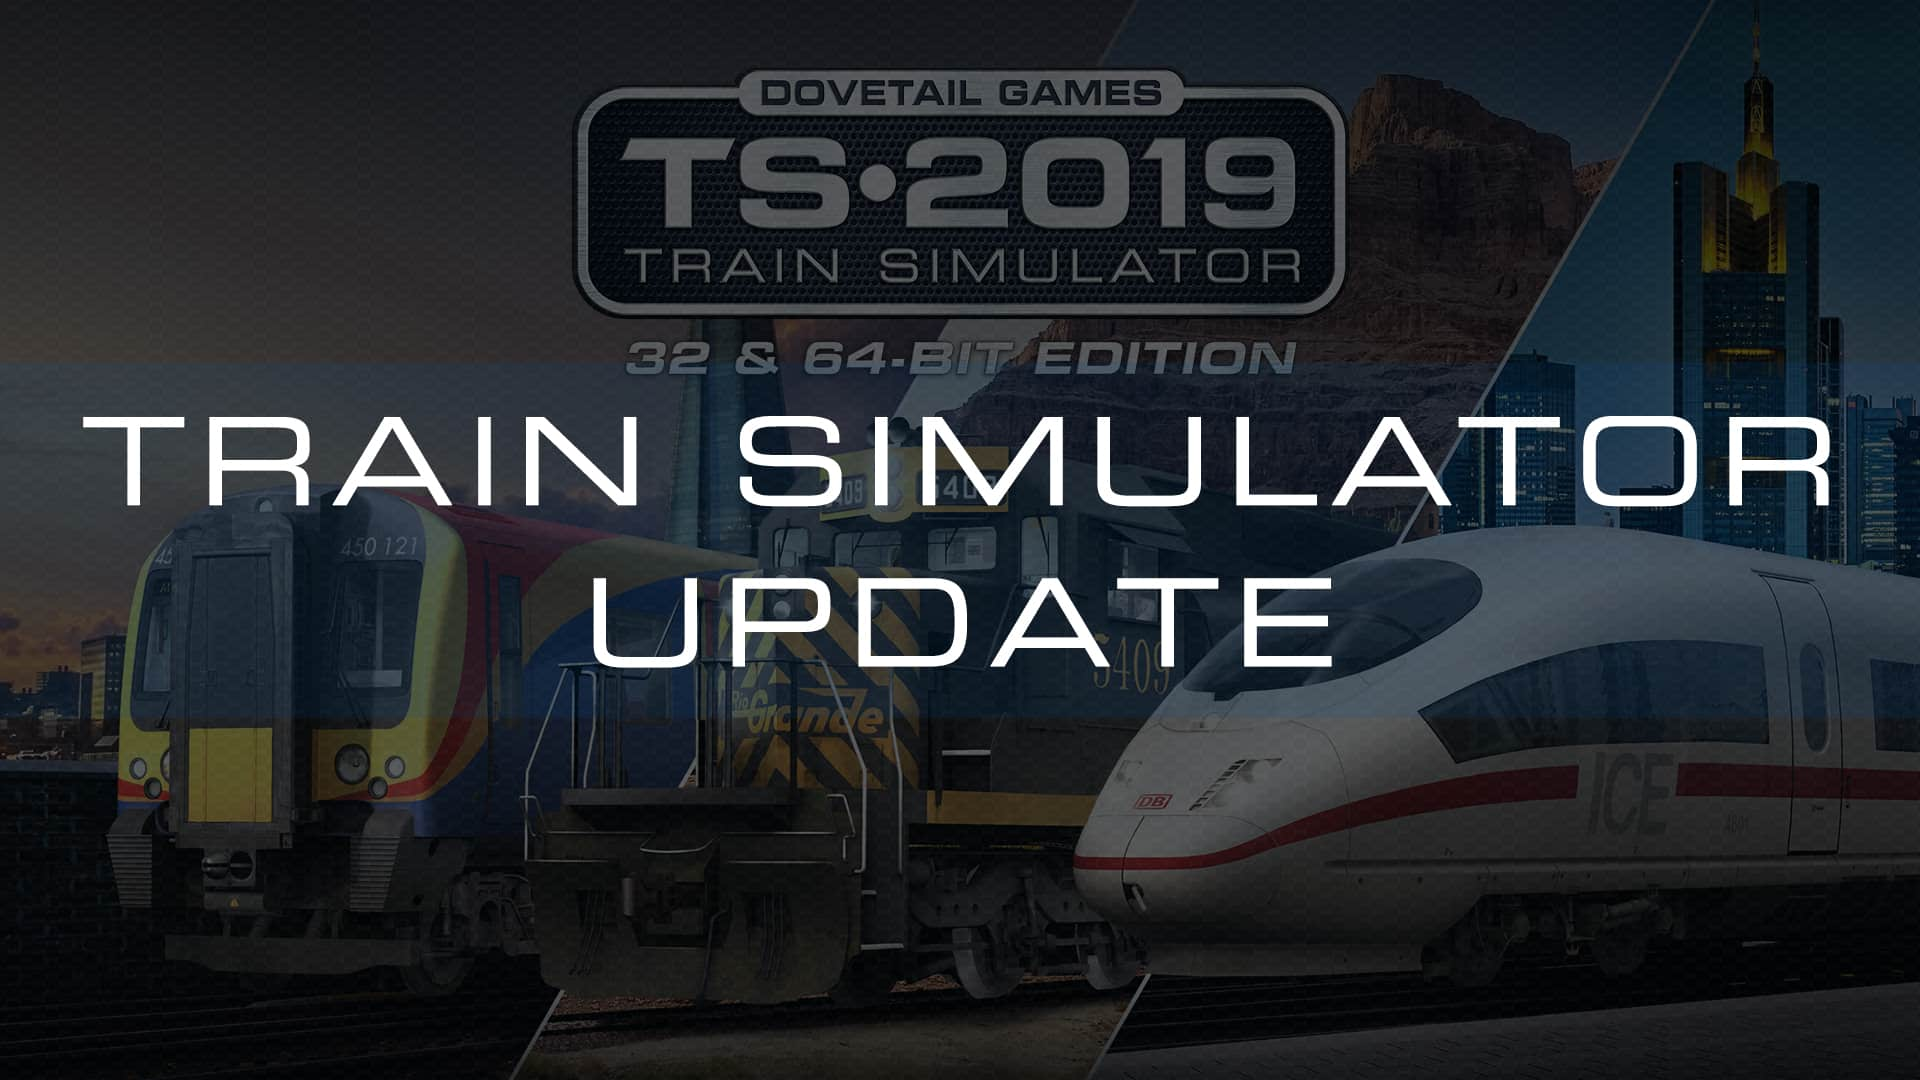 Train Simulator Update Available Now